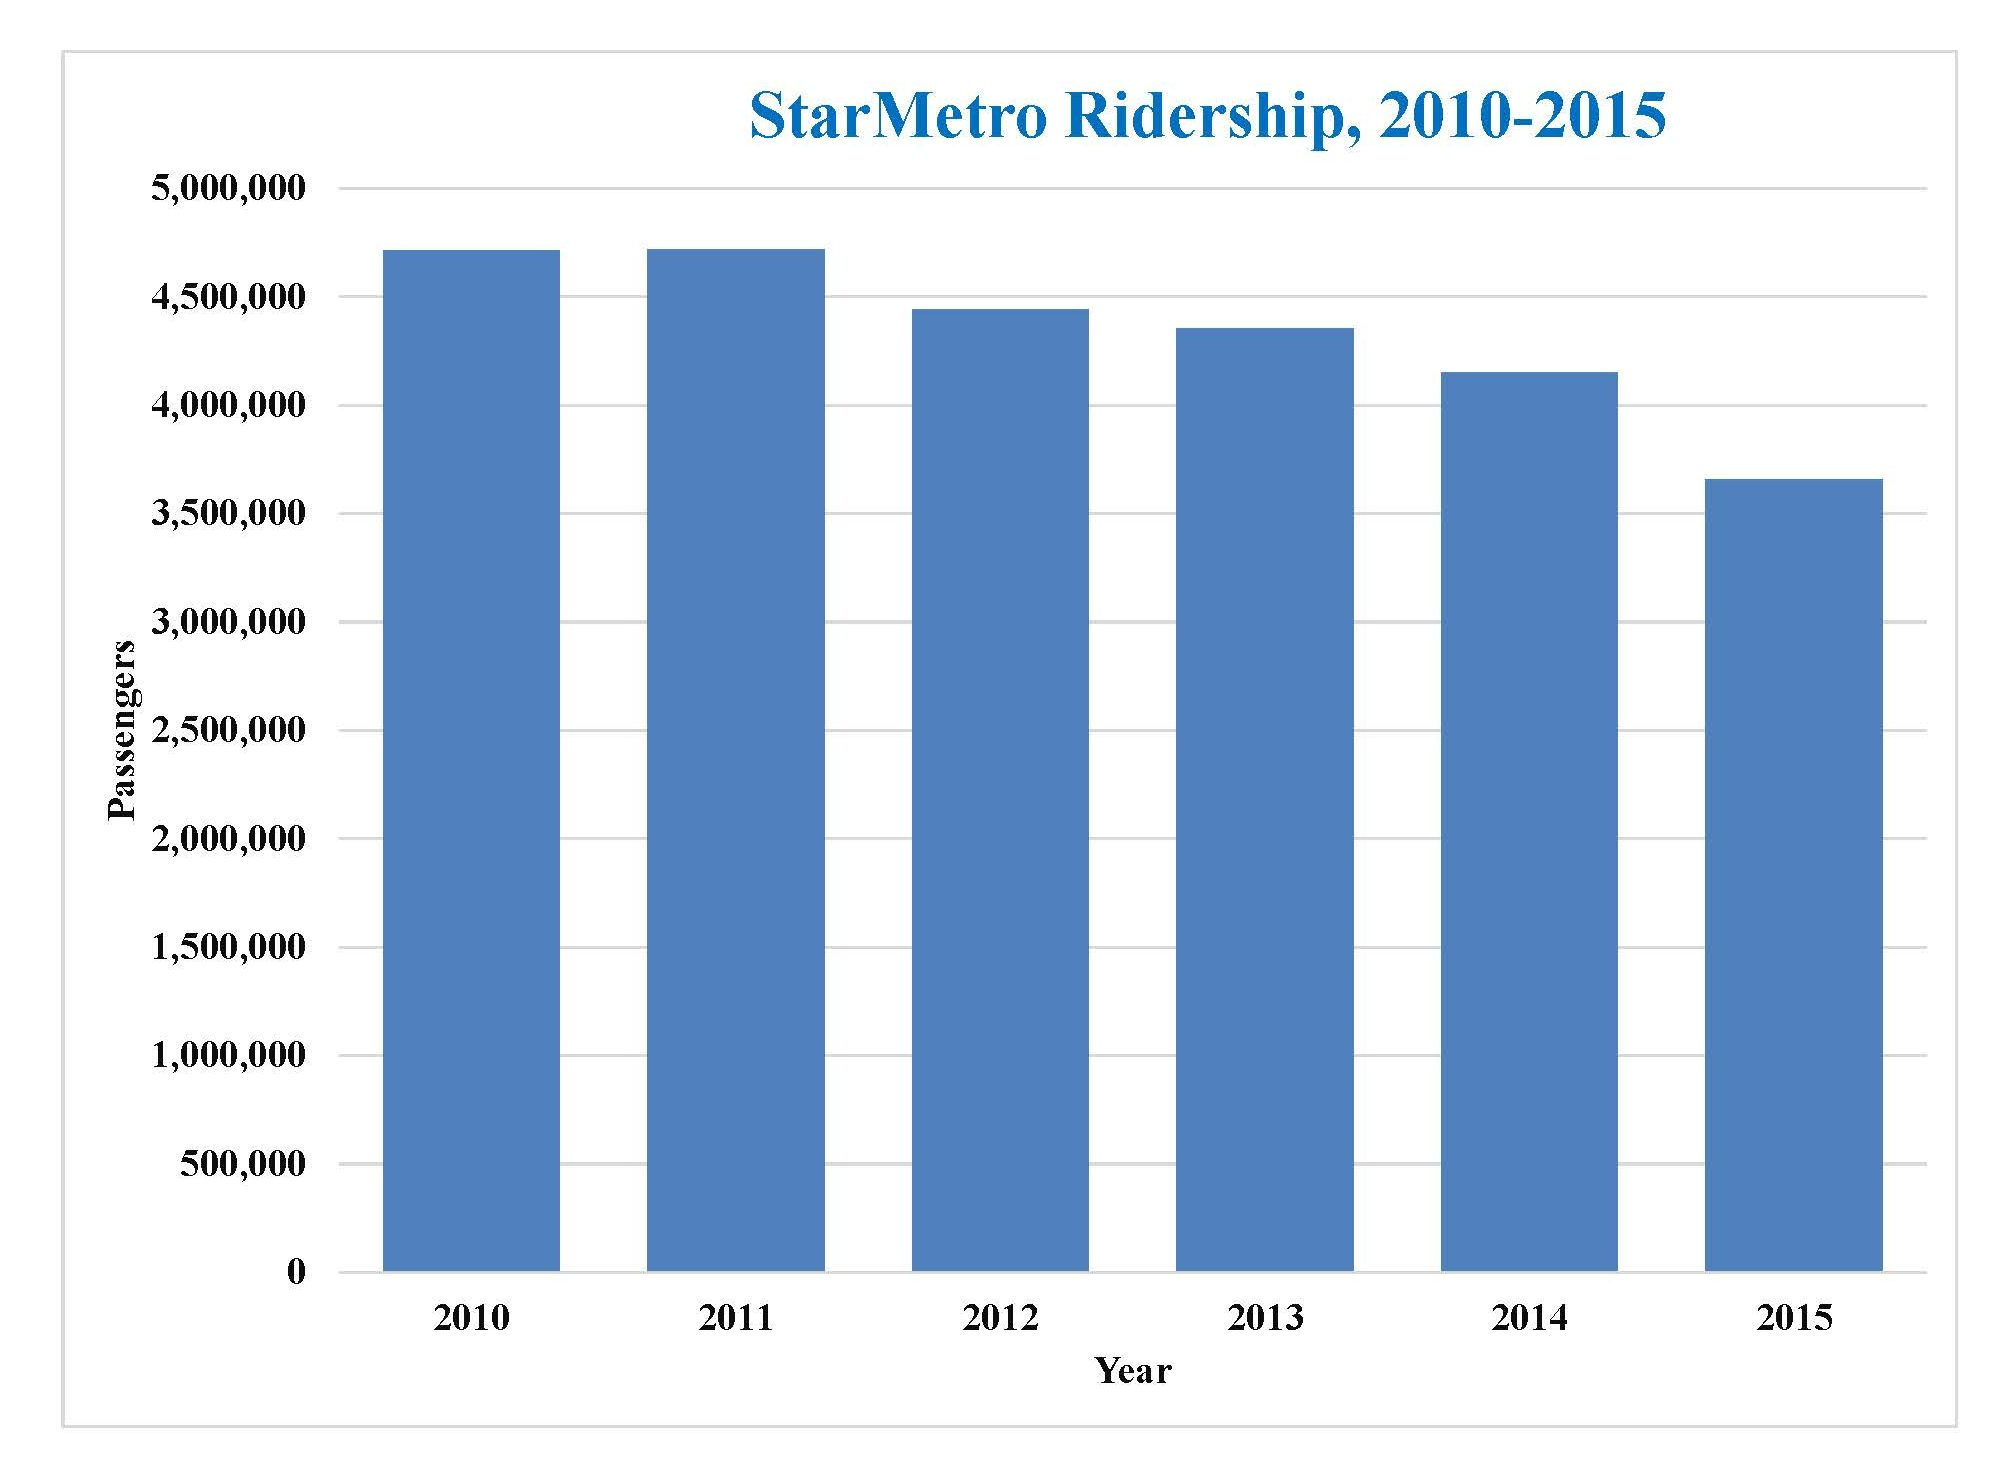 Starmetro Ridership Continues Decline With Slight Loss In 2016